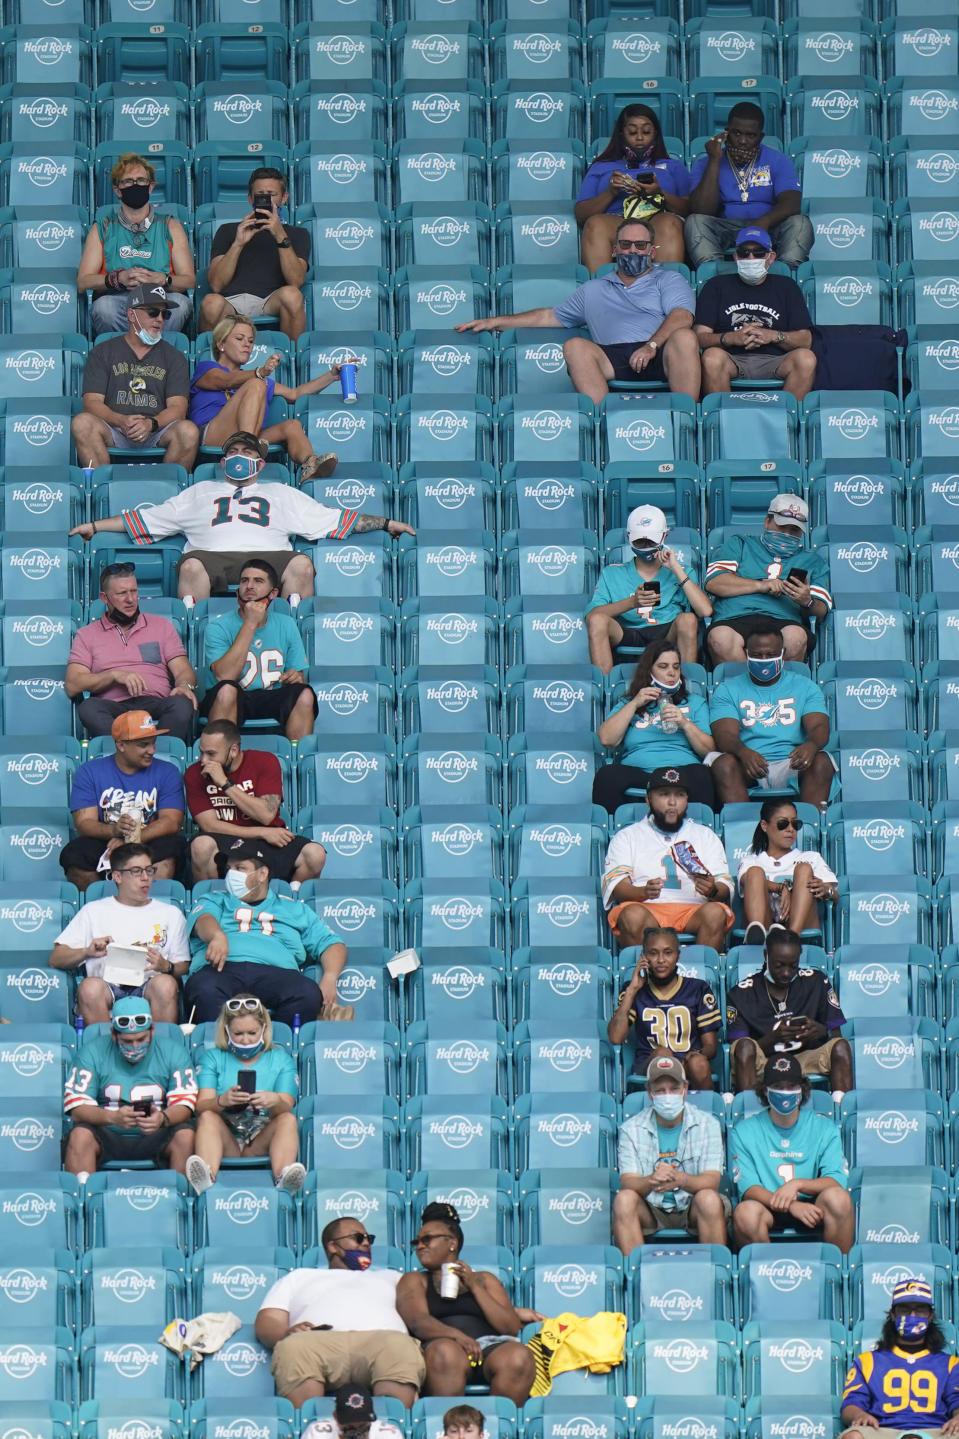 Fans watch during the first half of an NFL football game between the Miami Dolphins and the Los Angeles Rams, Sunday, Nov. 1, 2020, in Miami Gardens, Fla. (AP Photo/Wilfredo Lee)